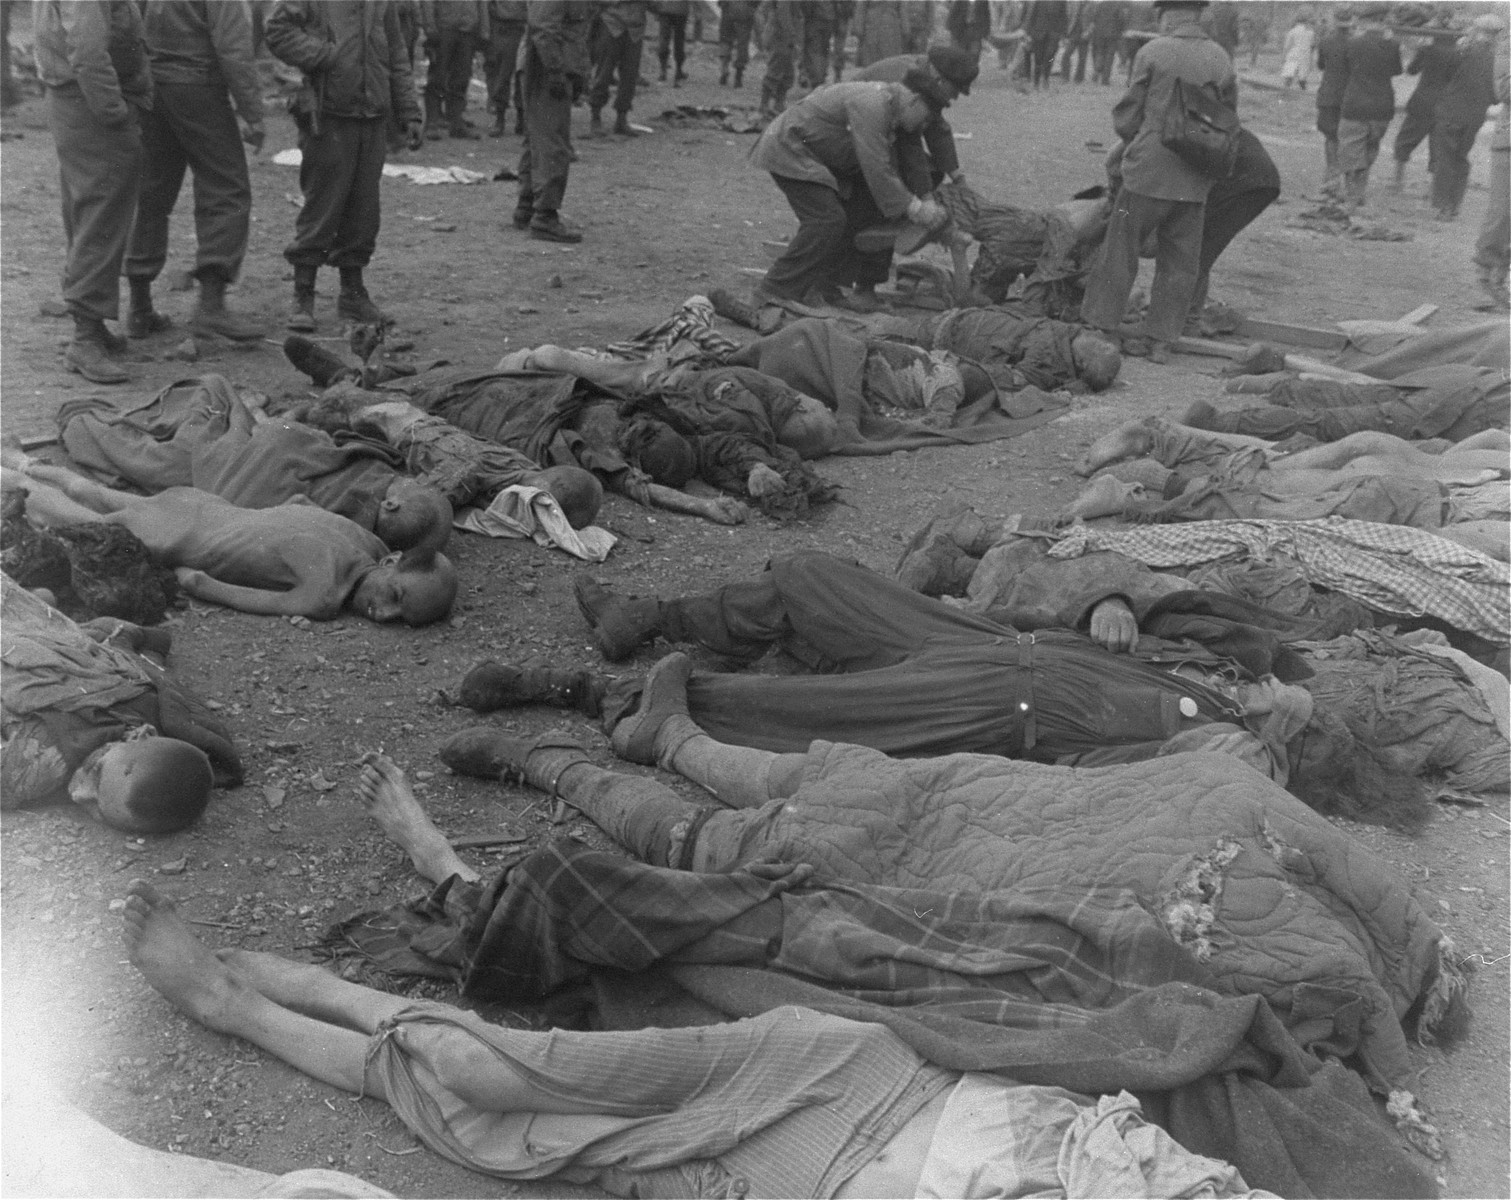 German civilians remove corpses from the grounds of the Nordhausen concentration camp as American soldiers watch.